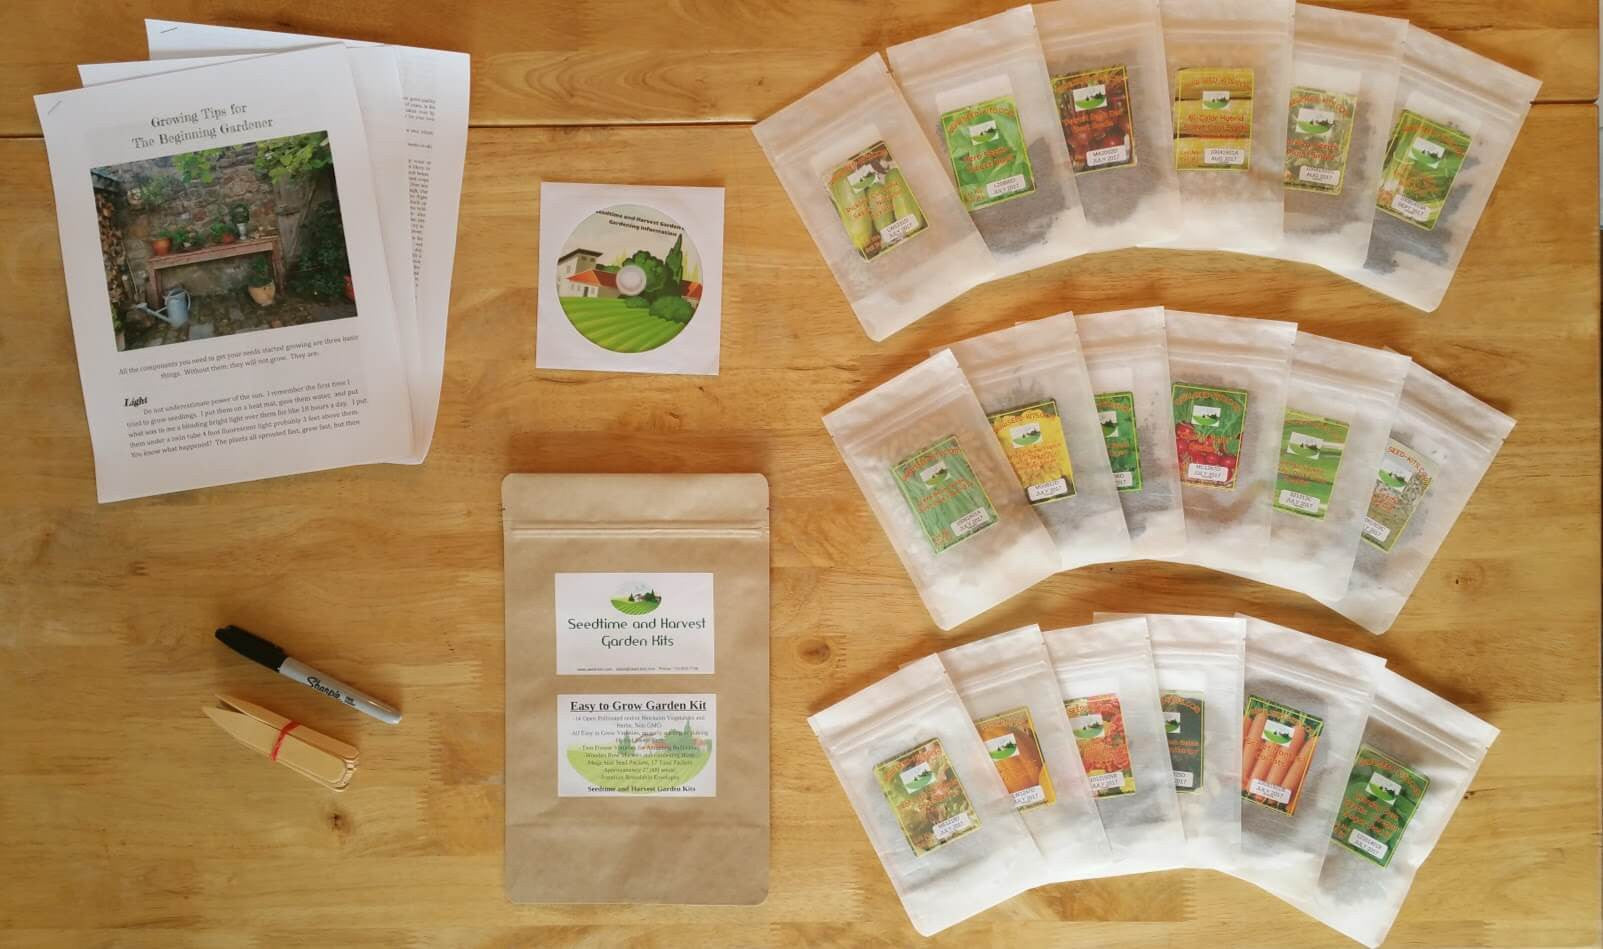 Easy to Grow Garden Kit